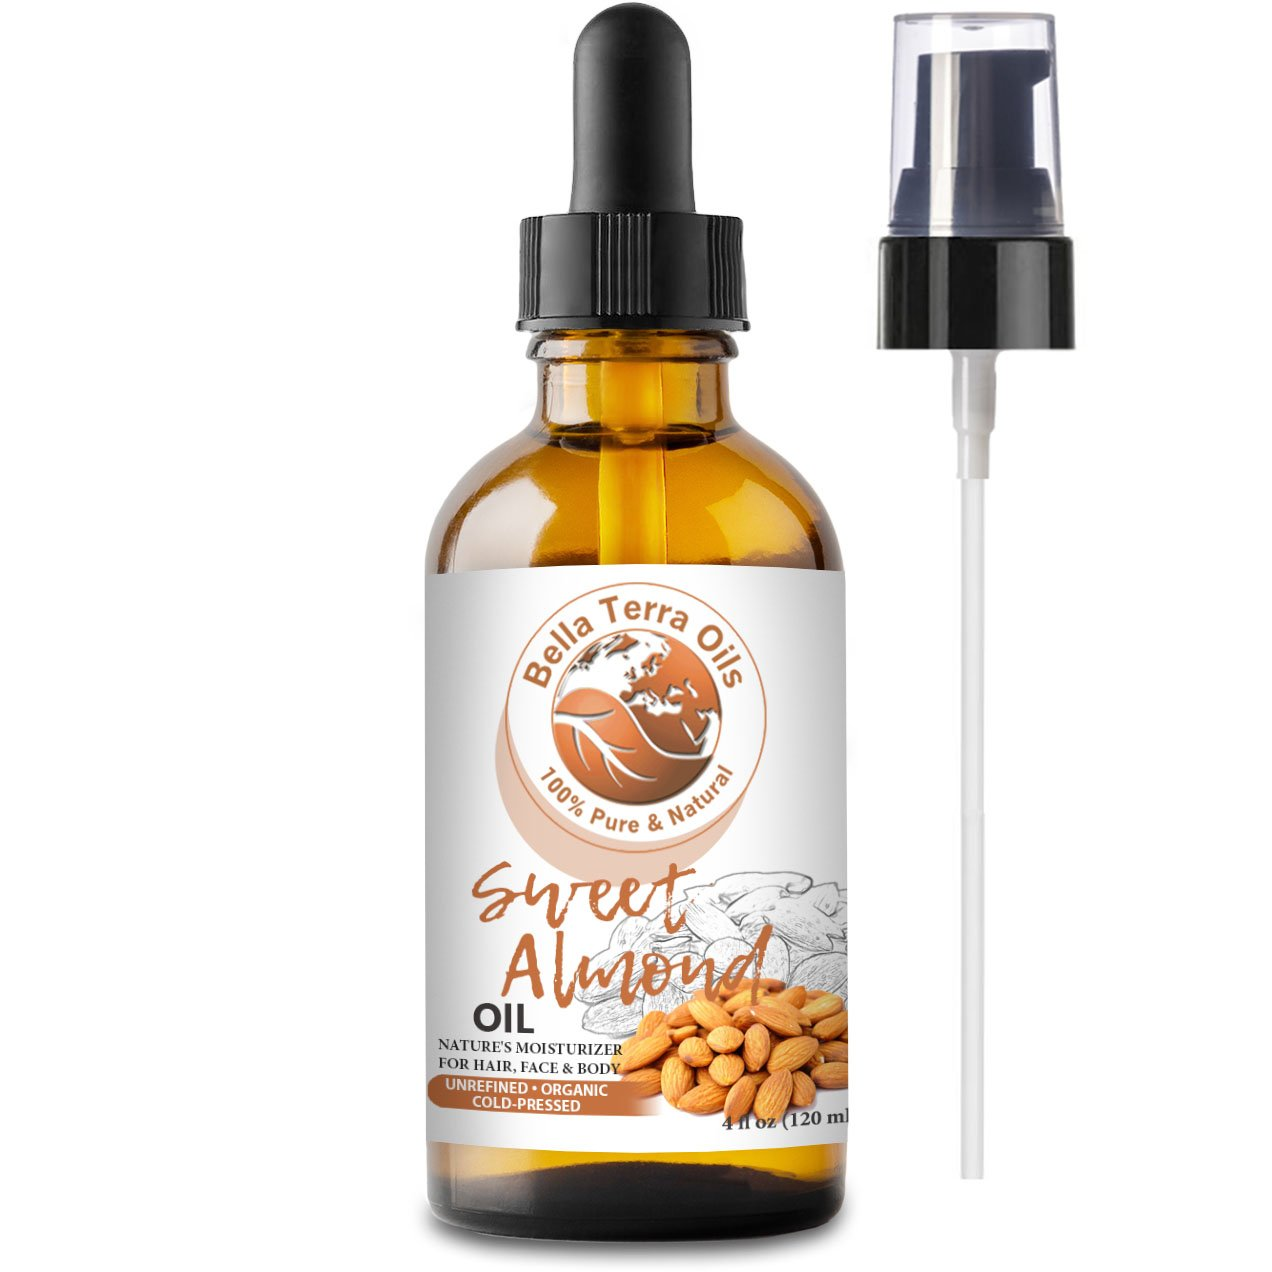 NEW Sweet Almond Oil. 4oz. Cold-pressed. Unrefined. Organic. 100% Pure. Pasteurized. Hexane-free. Fights Wrinkles. Softens Hair. Natural Moisturizer. For Hair, Face, Body, Nails, Beard, Stretch Marks.